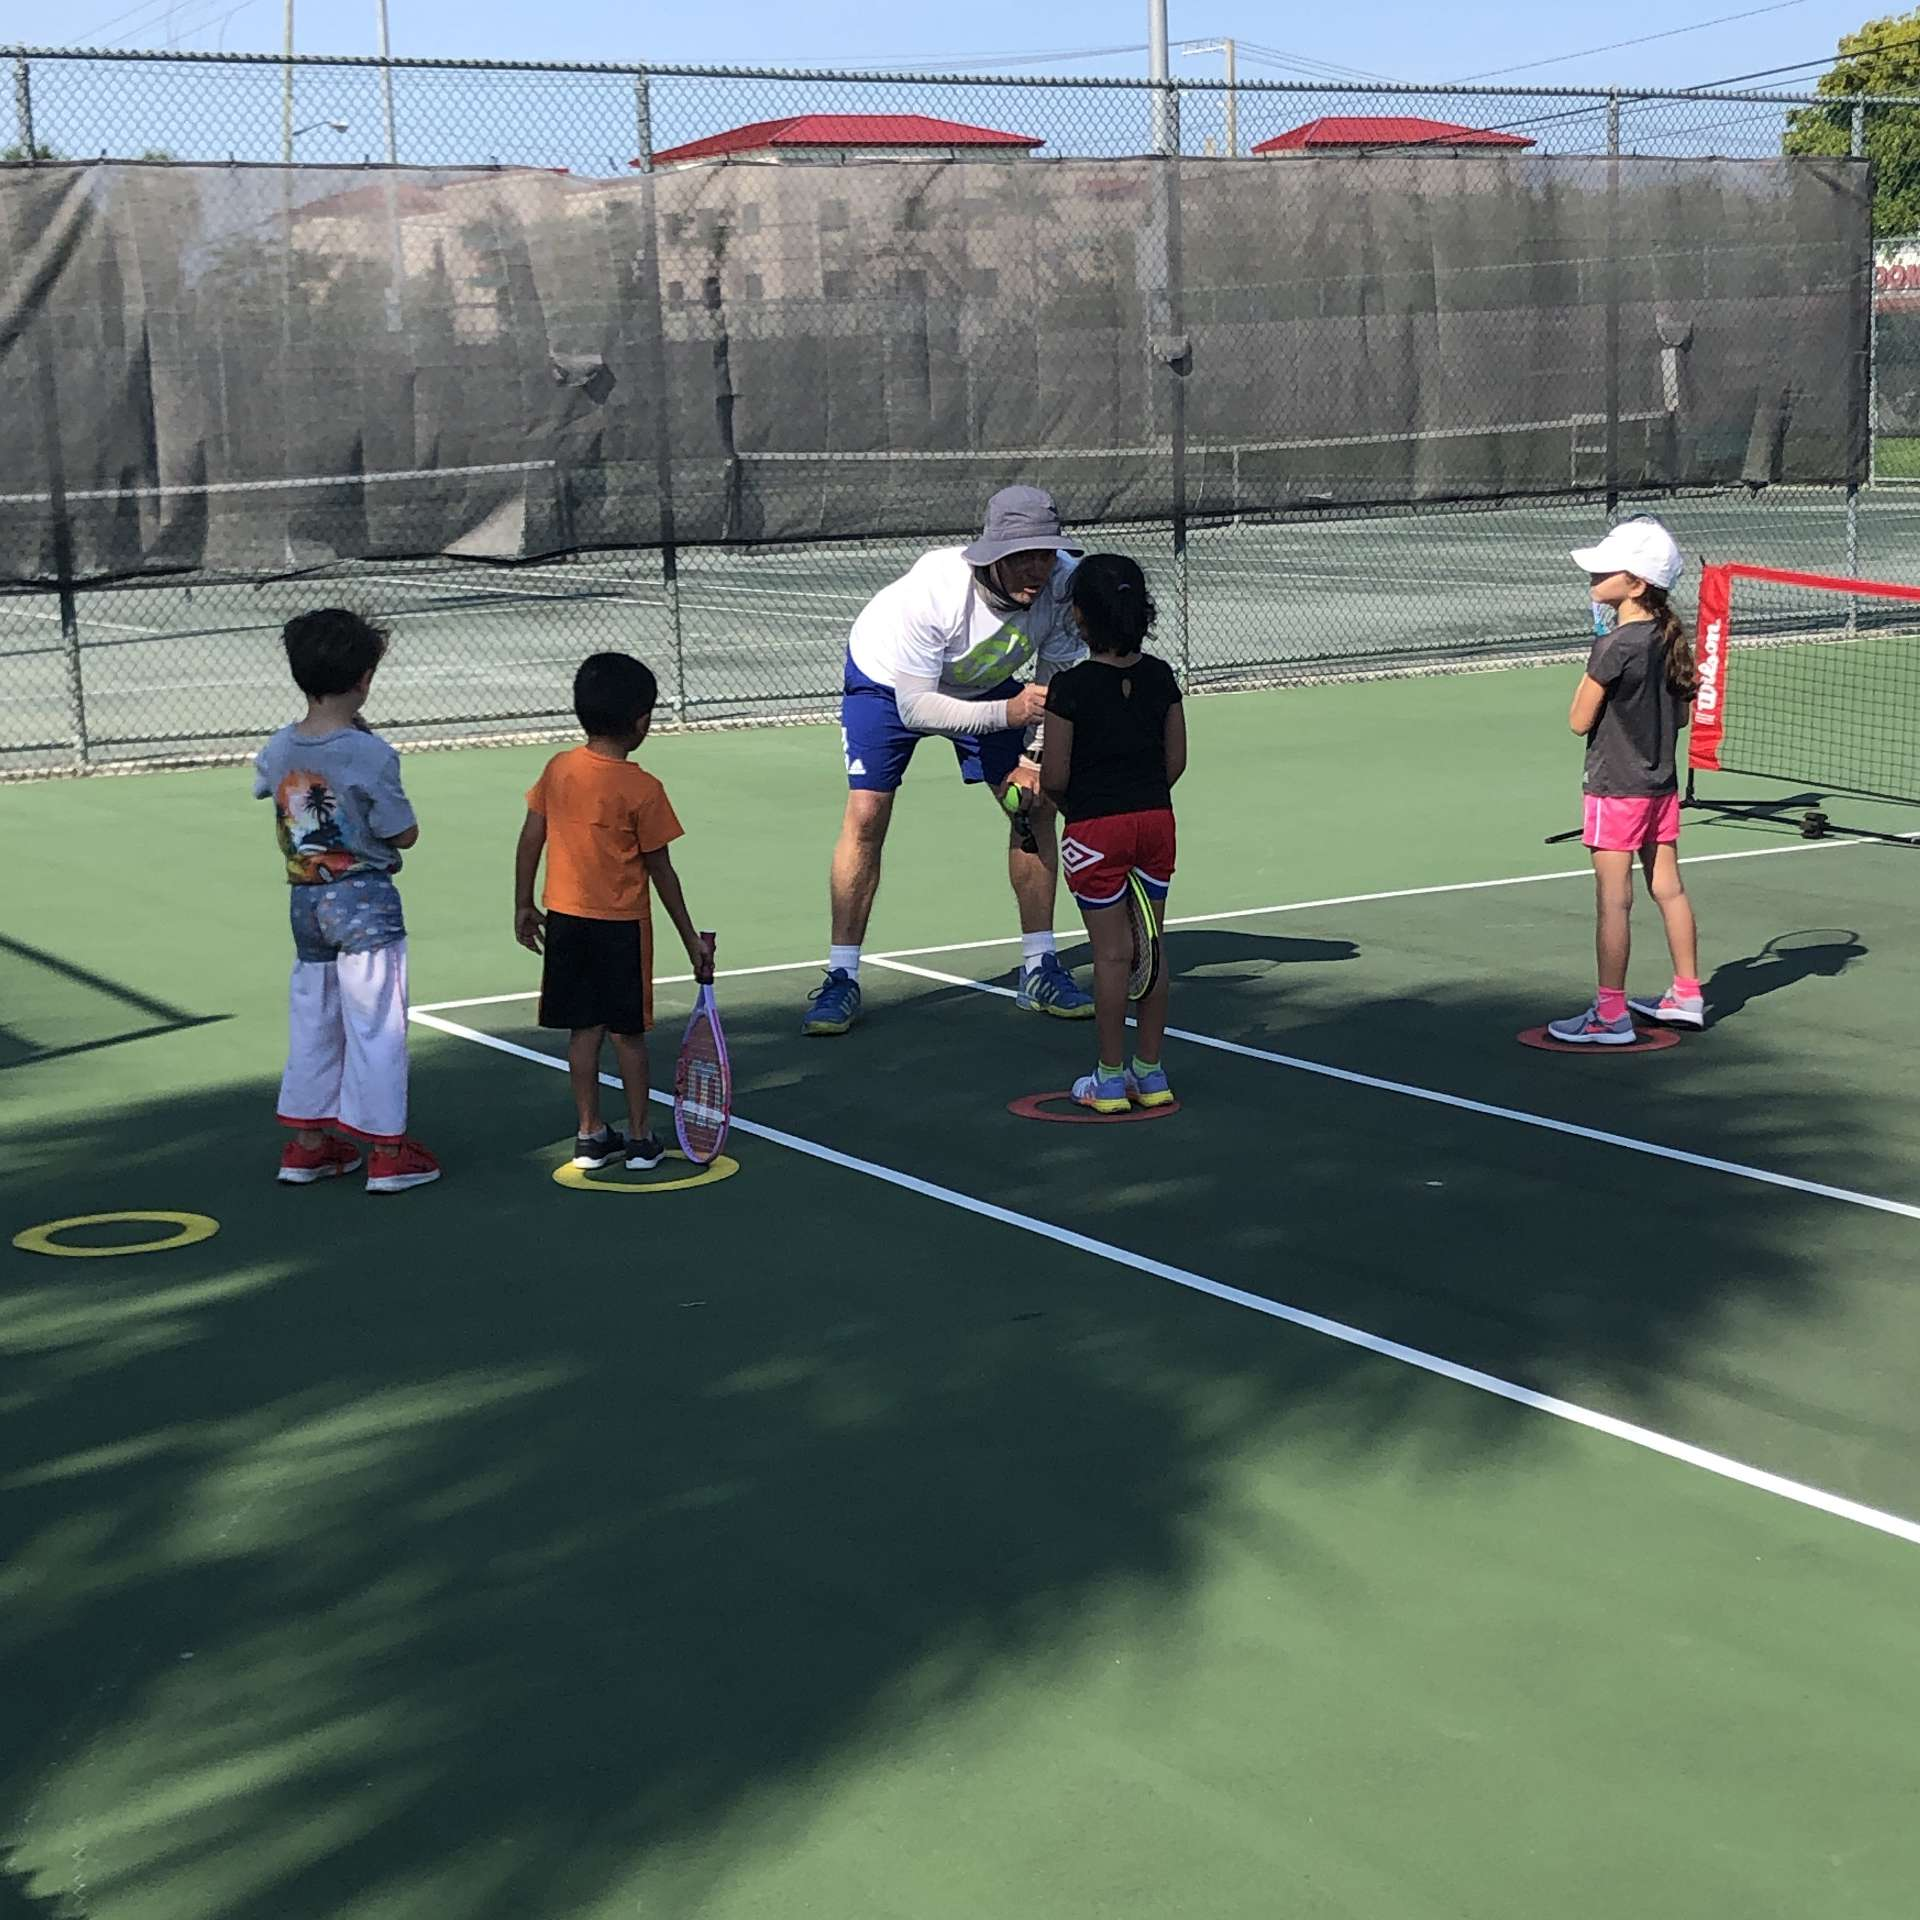 After school tennis with coach Allington Mutimer